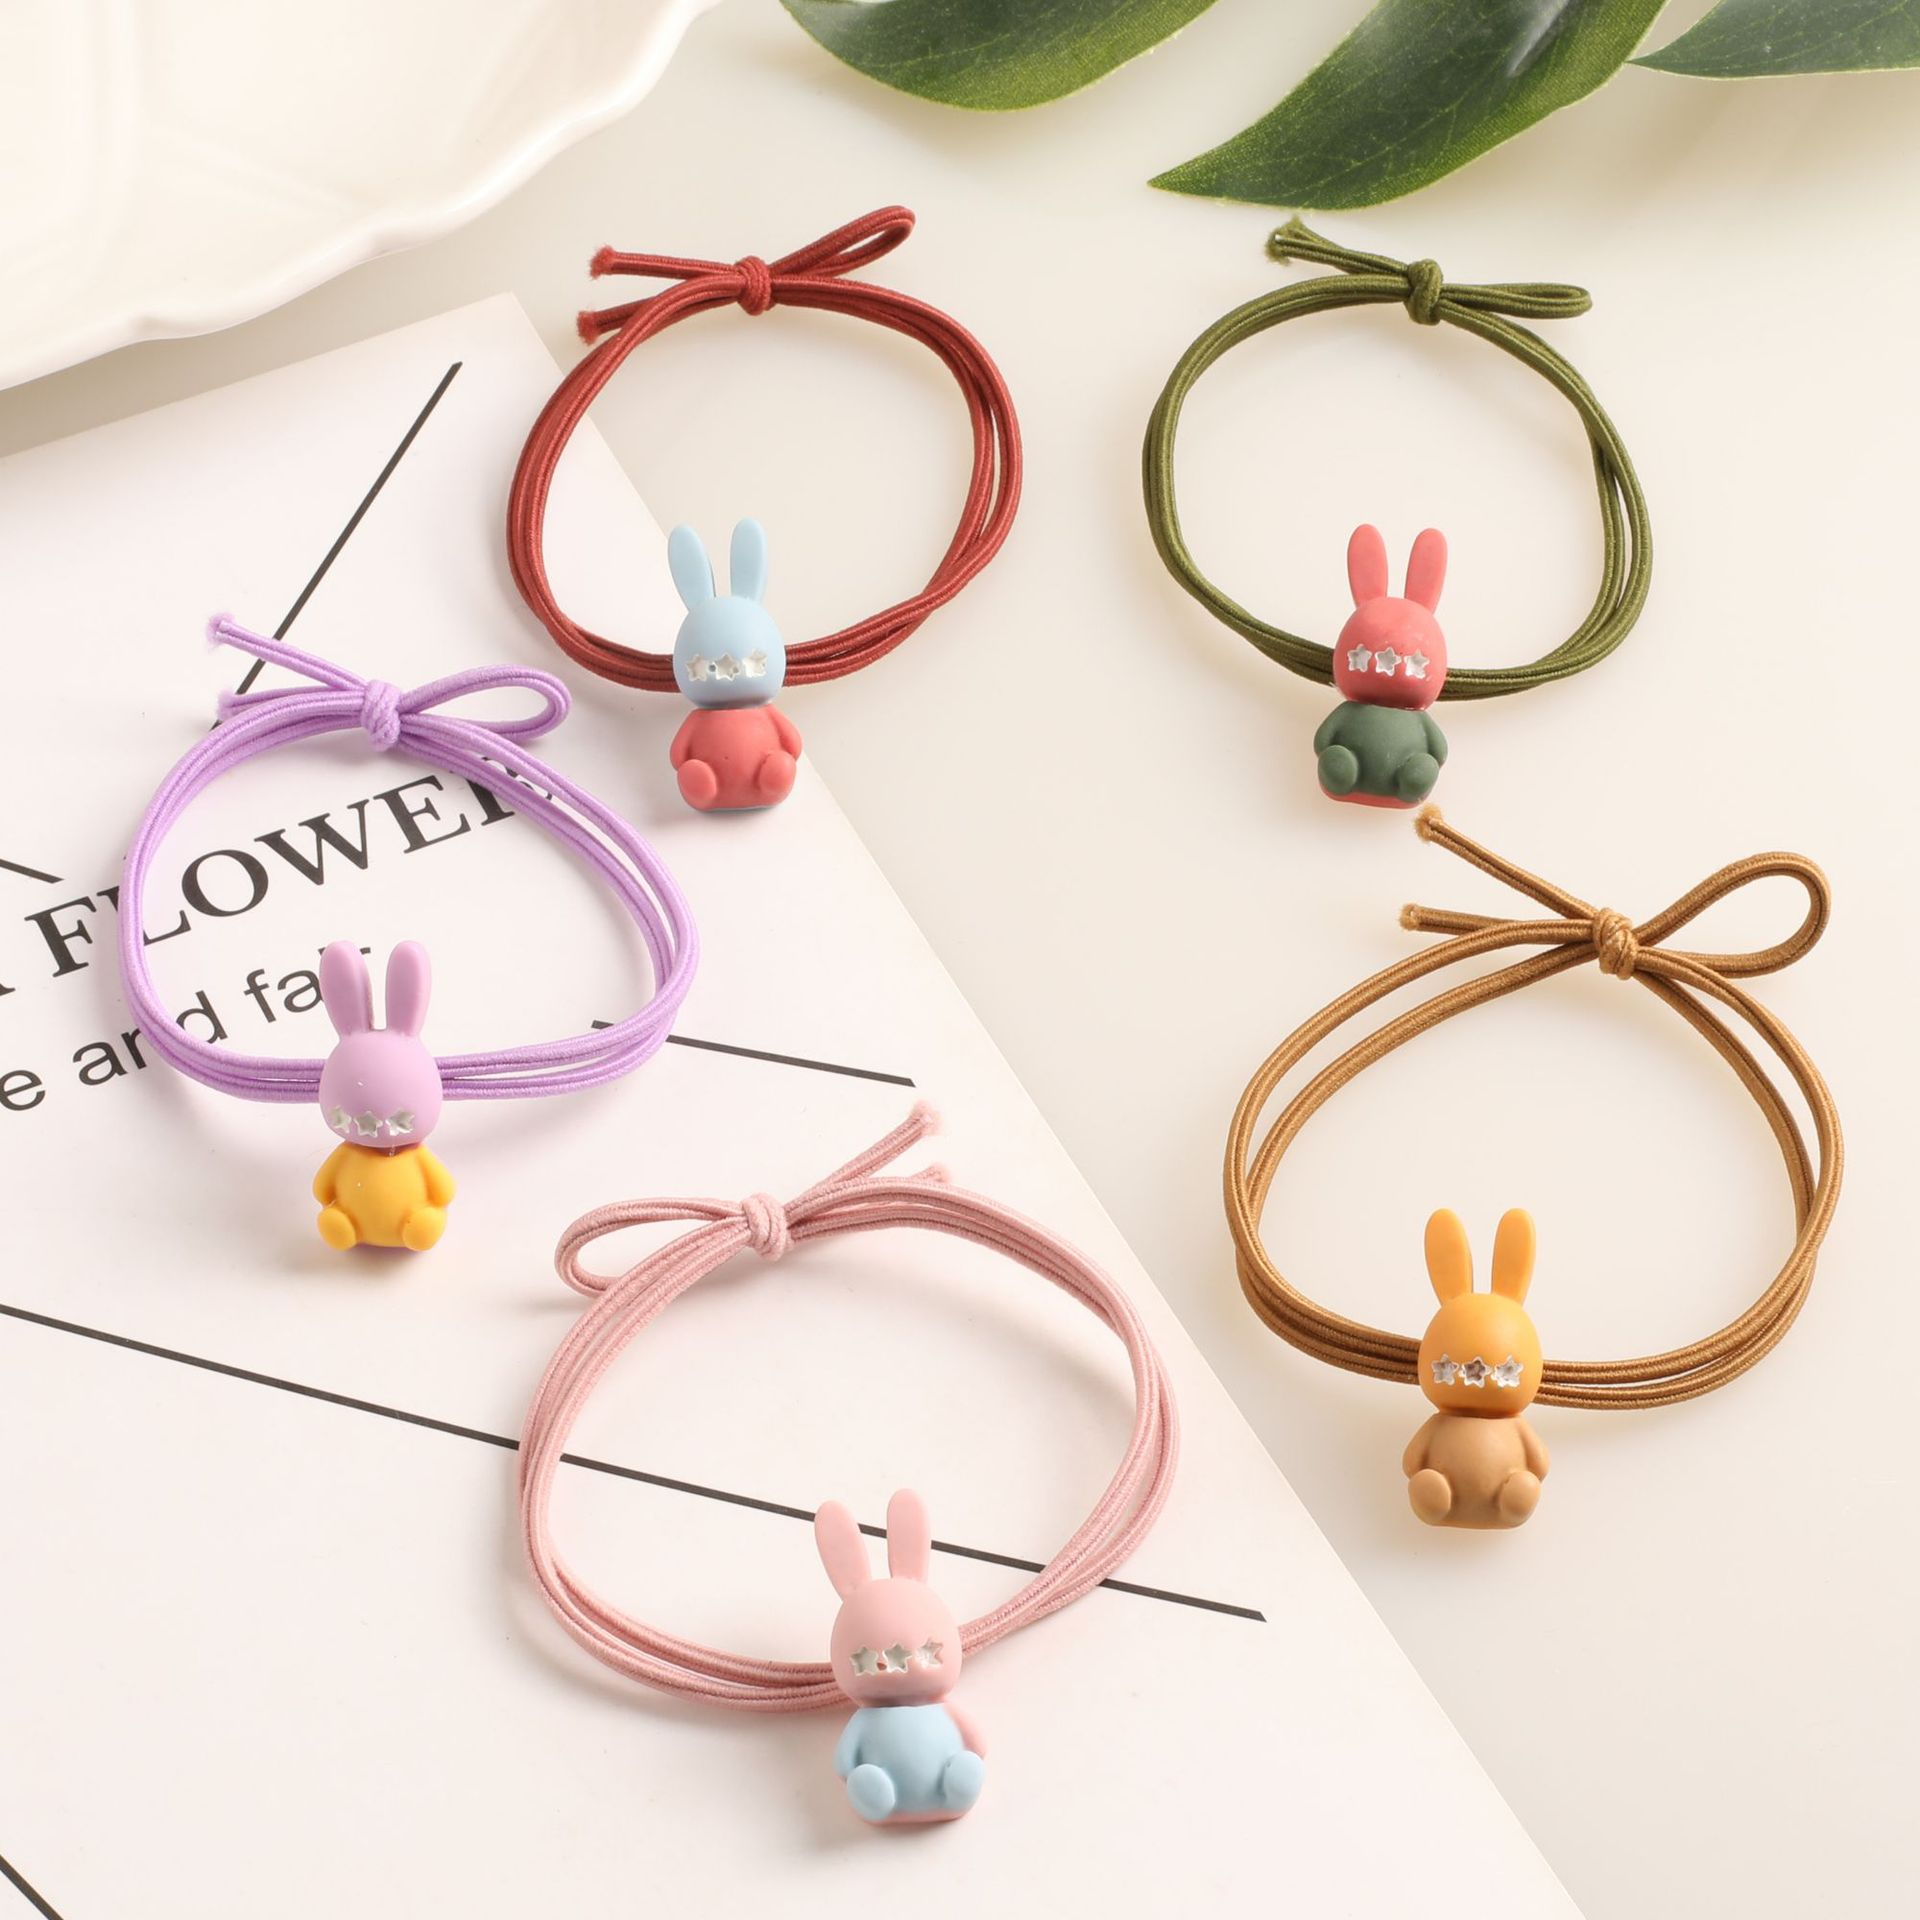 Two-Tone Bunny Hair Tie for Kids Hairstyles